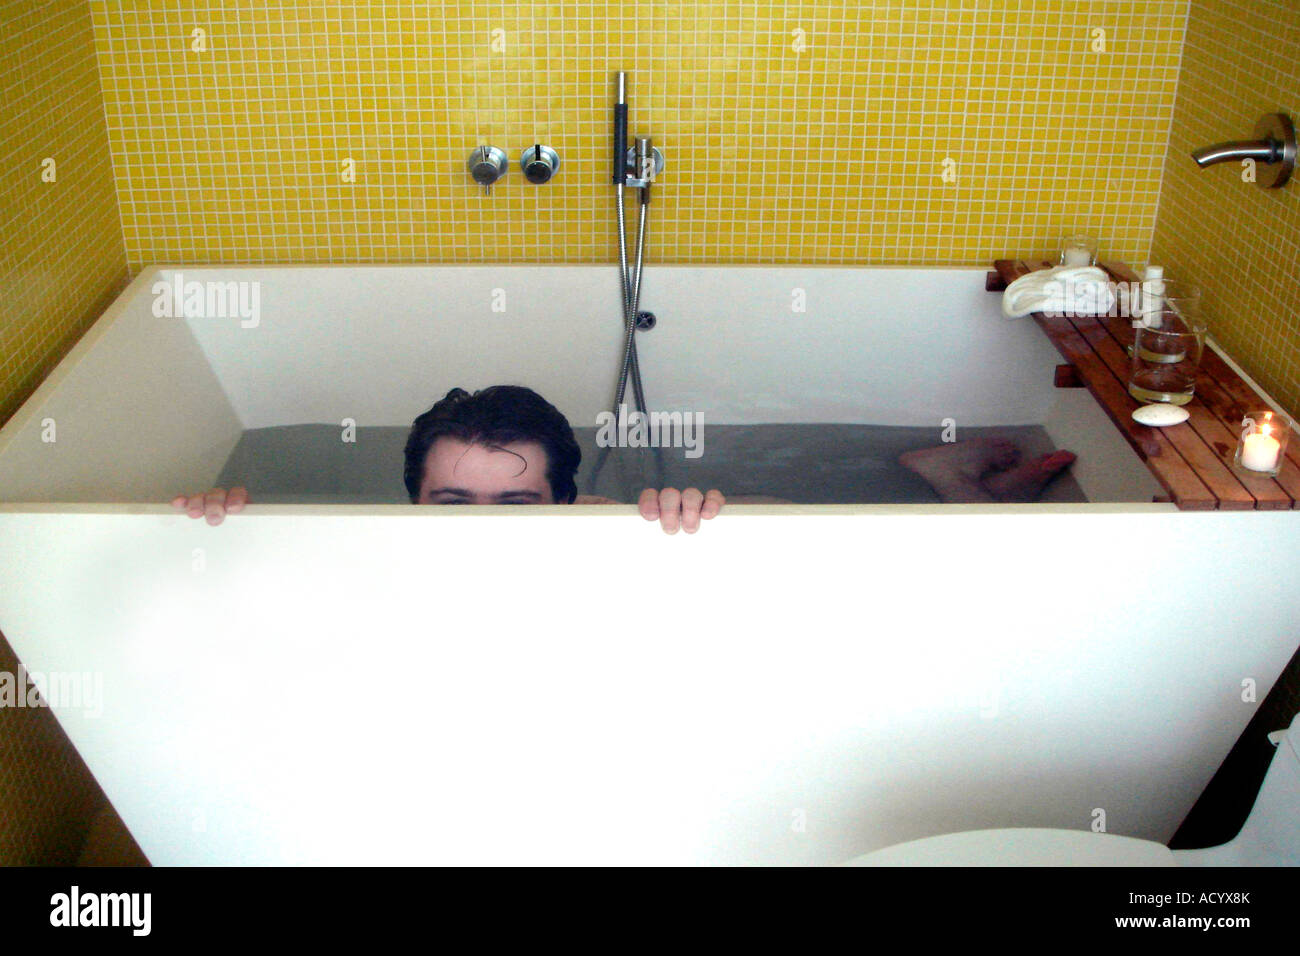 Man in a Japanese soaking tub Stock Photo: 13258434 - Alamy